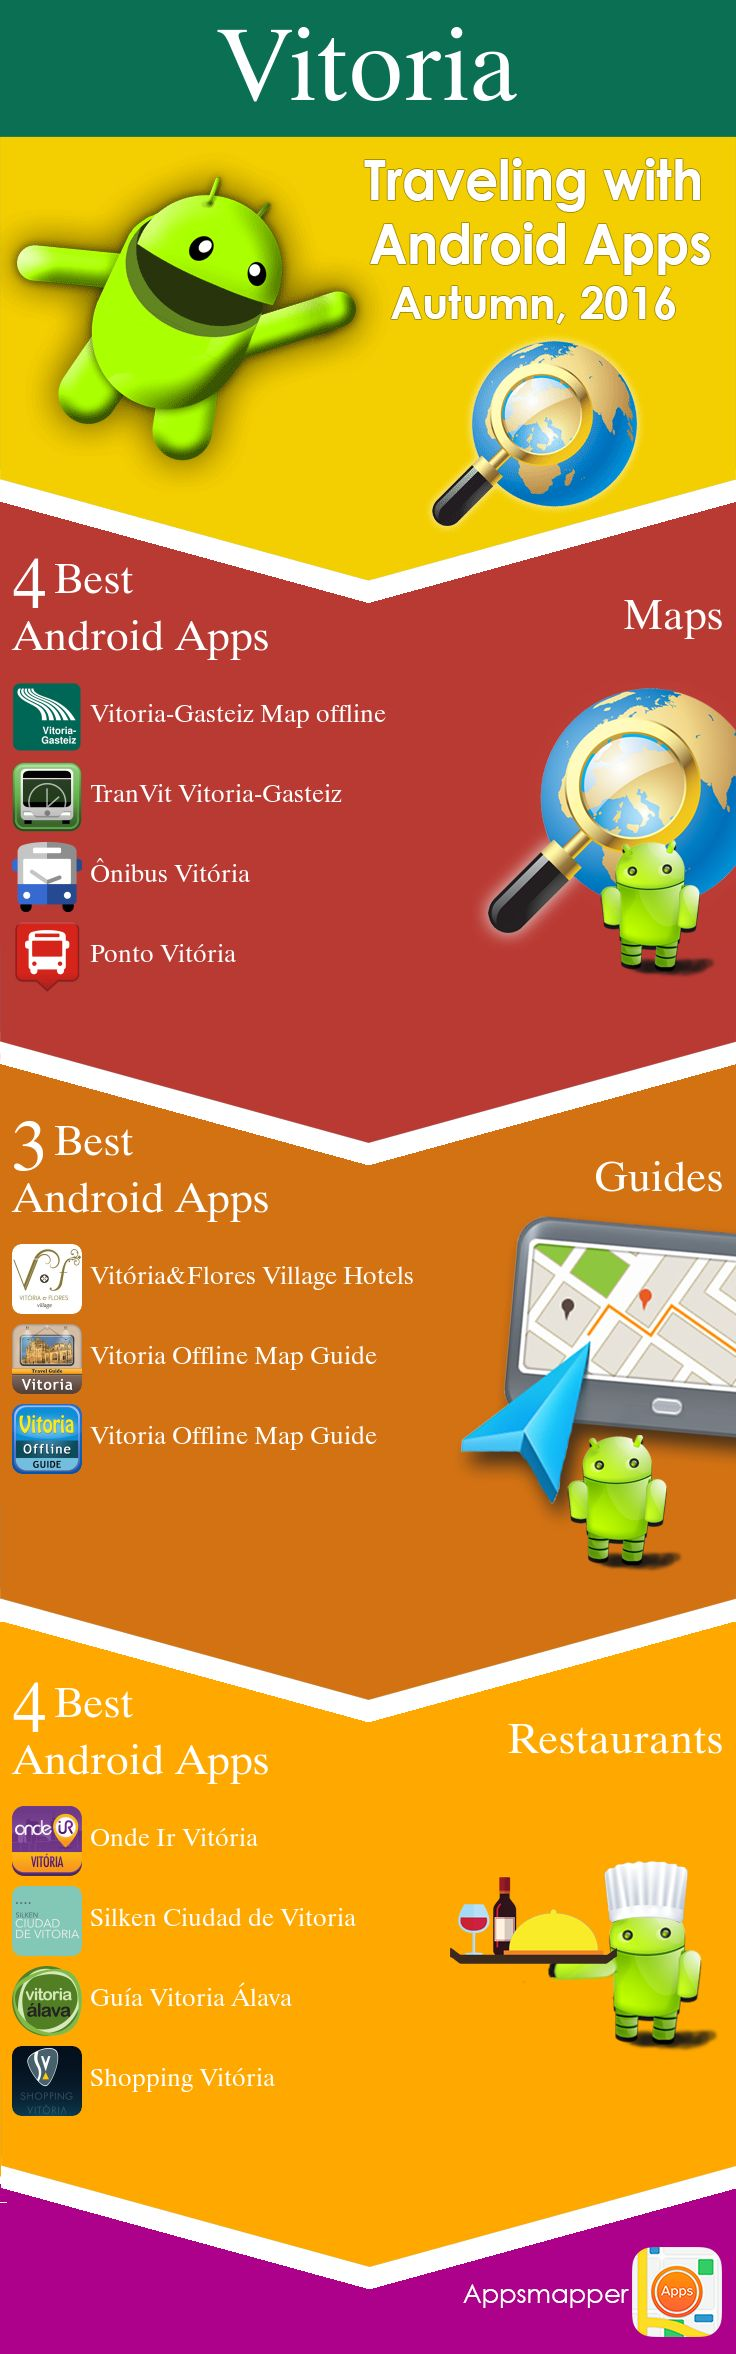 Vitoria Android apps: Travel Guides, Maps, Transportation, Biking, Museums, Parking, Sport and apps for Students.